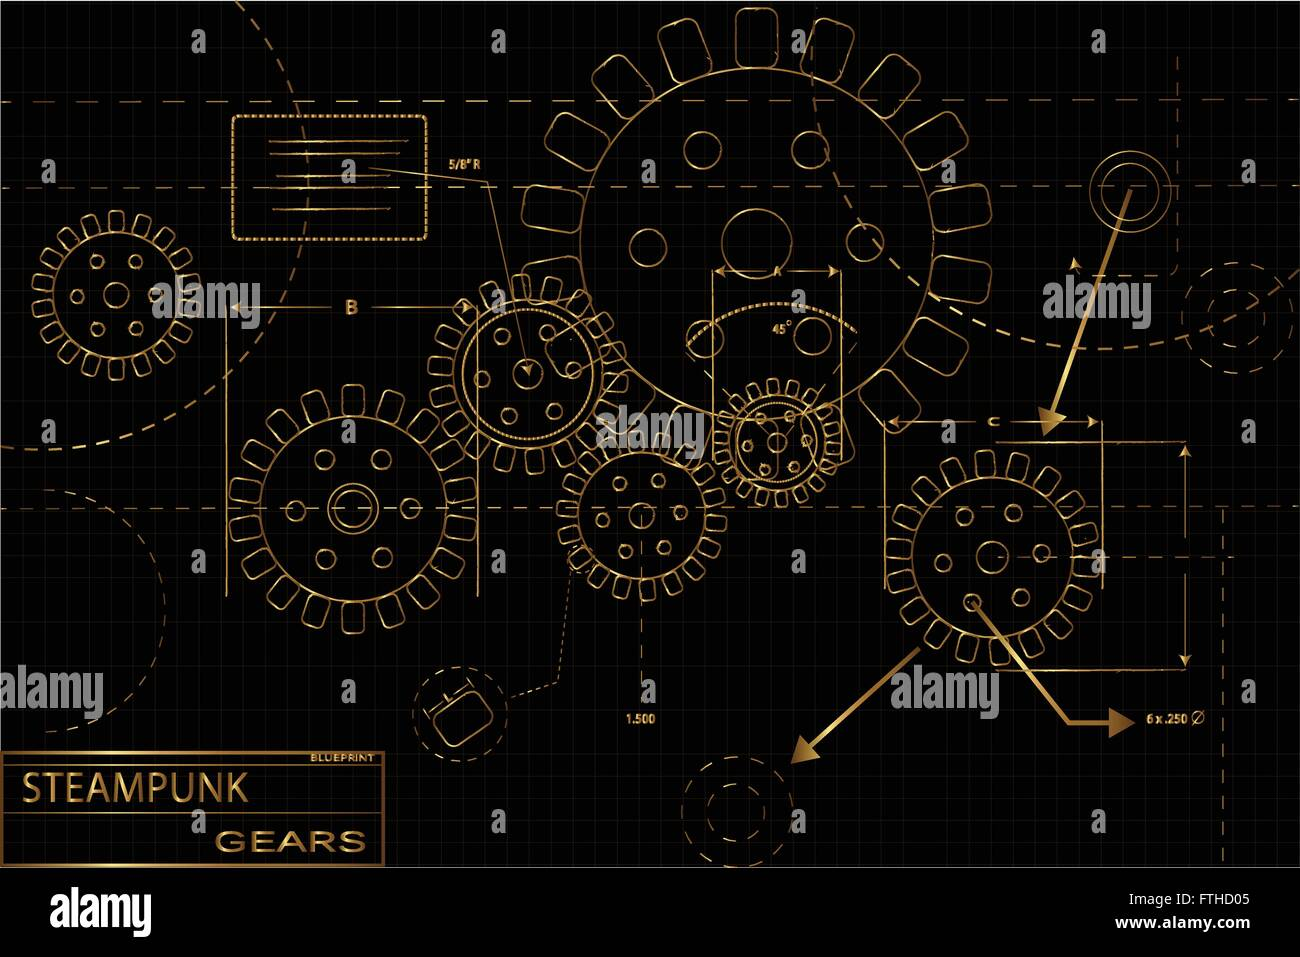 Gold and black steampunk gears blueprint vector illustration stock gold and black steampunk gears blueprint vector illustration malvernweather Image collections